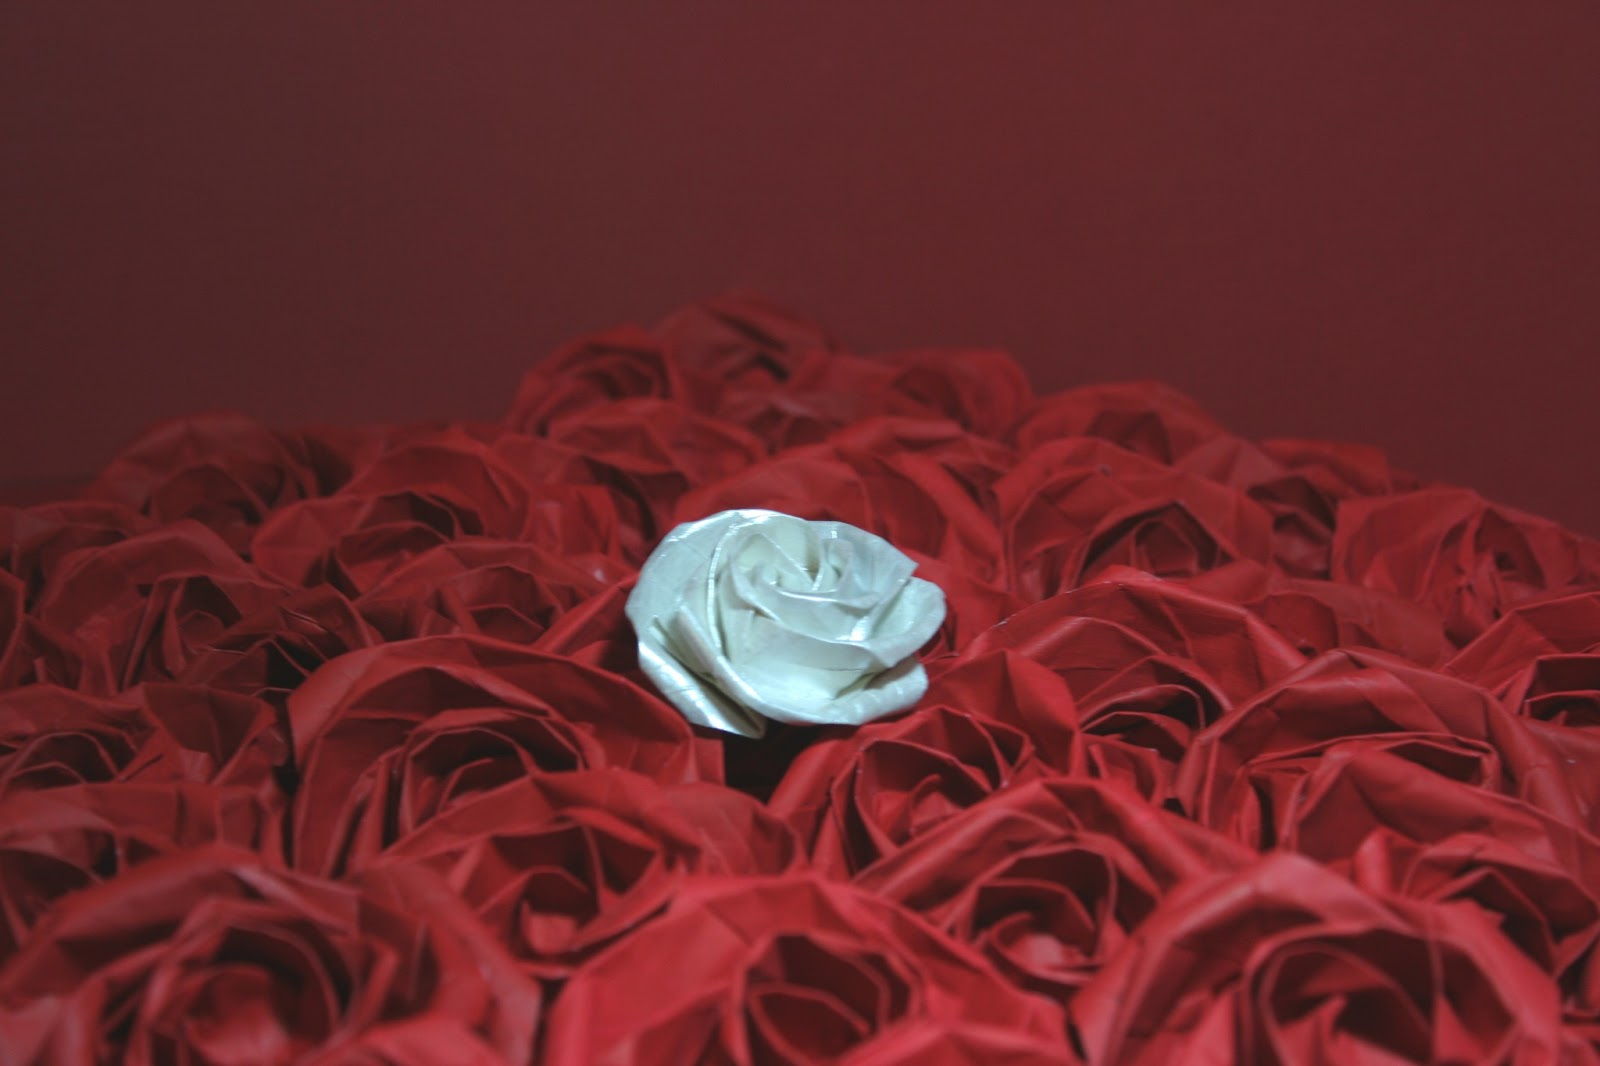 ORIGAMI CONSTRUCTIONS: Bouquet of Origami Roses - photo#18